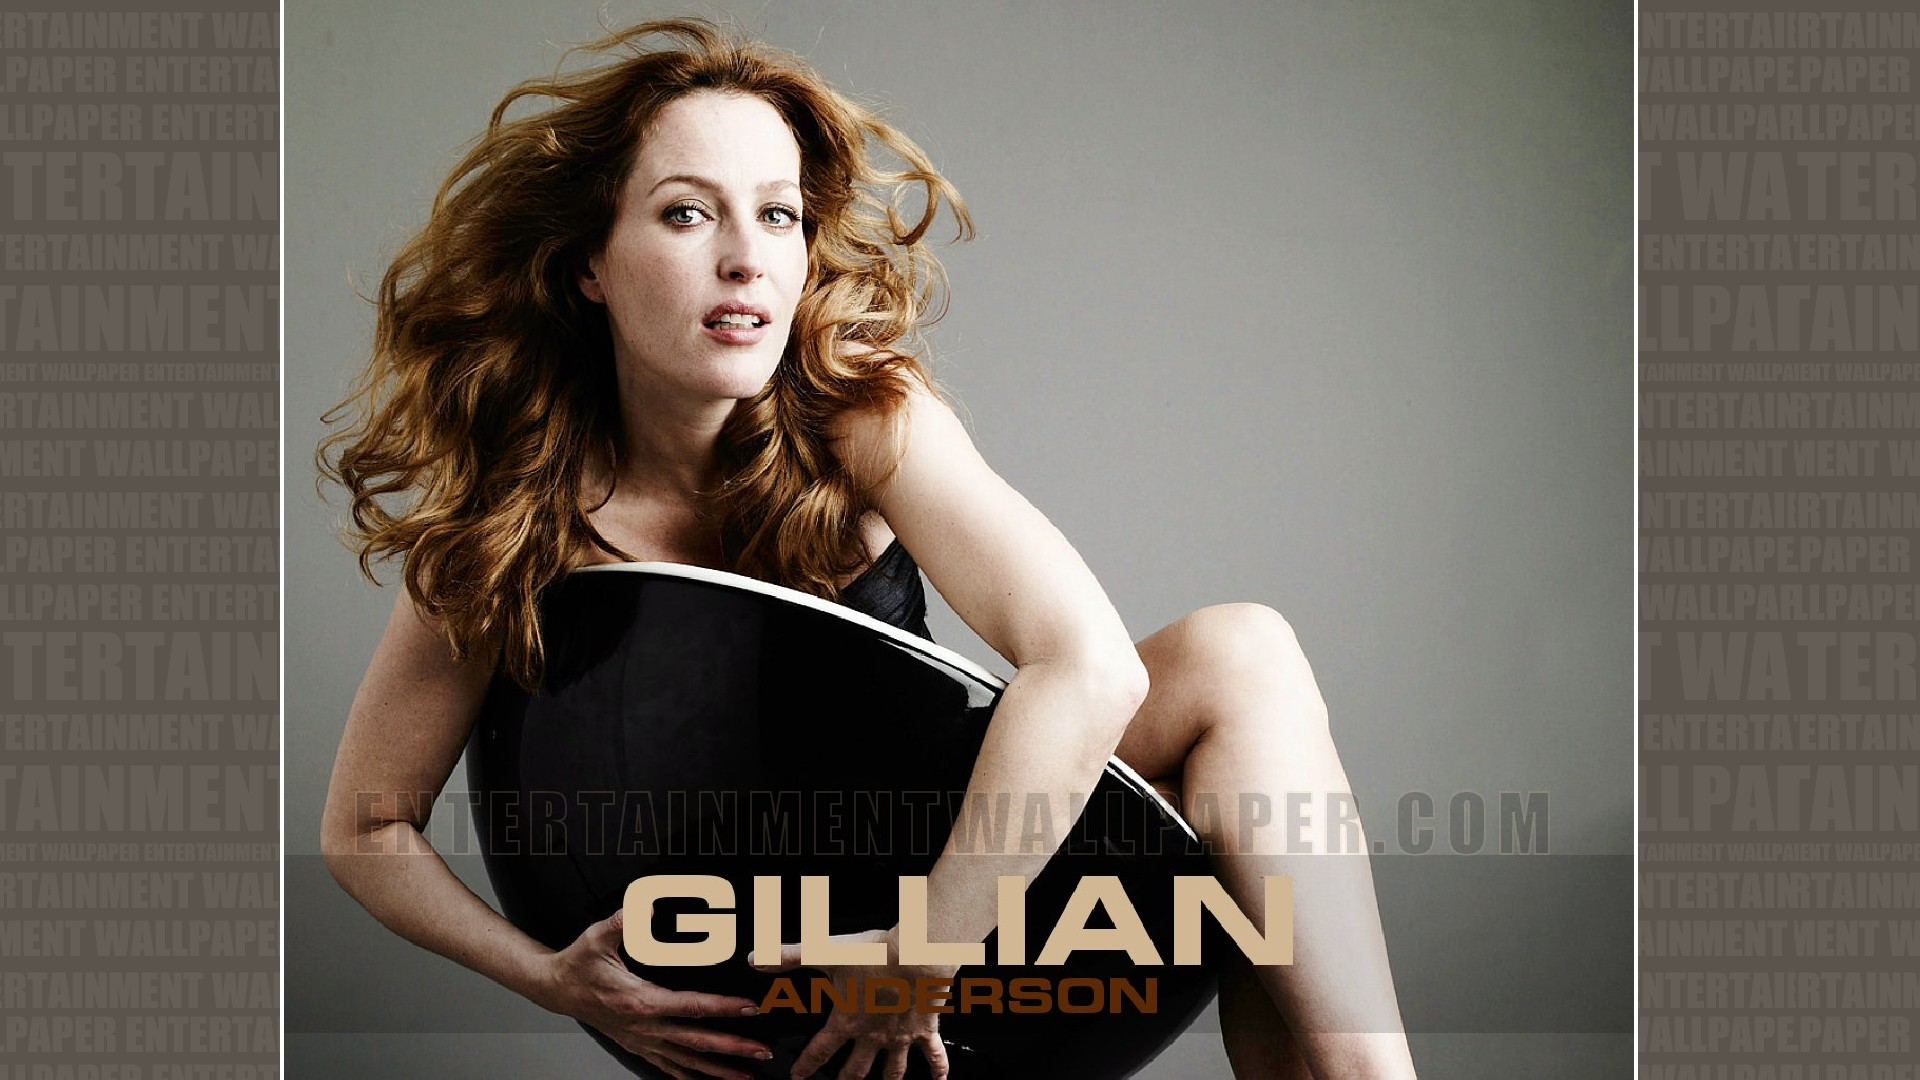 1920x1080 - Gillian Anderson Wallpapers 4